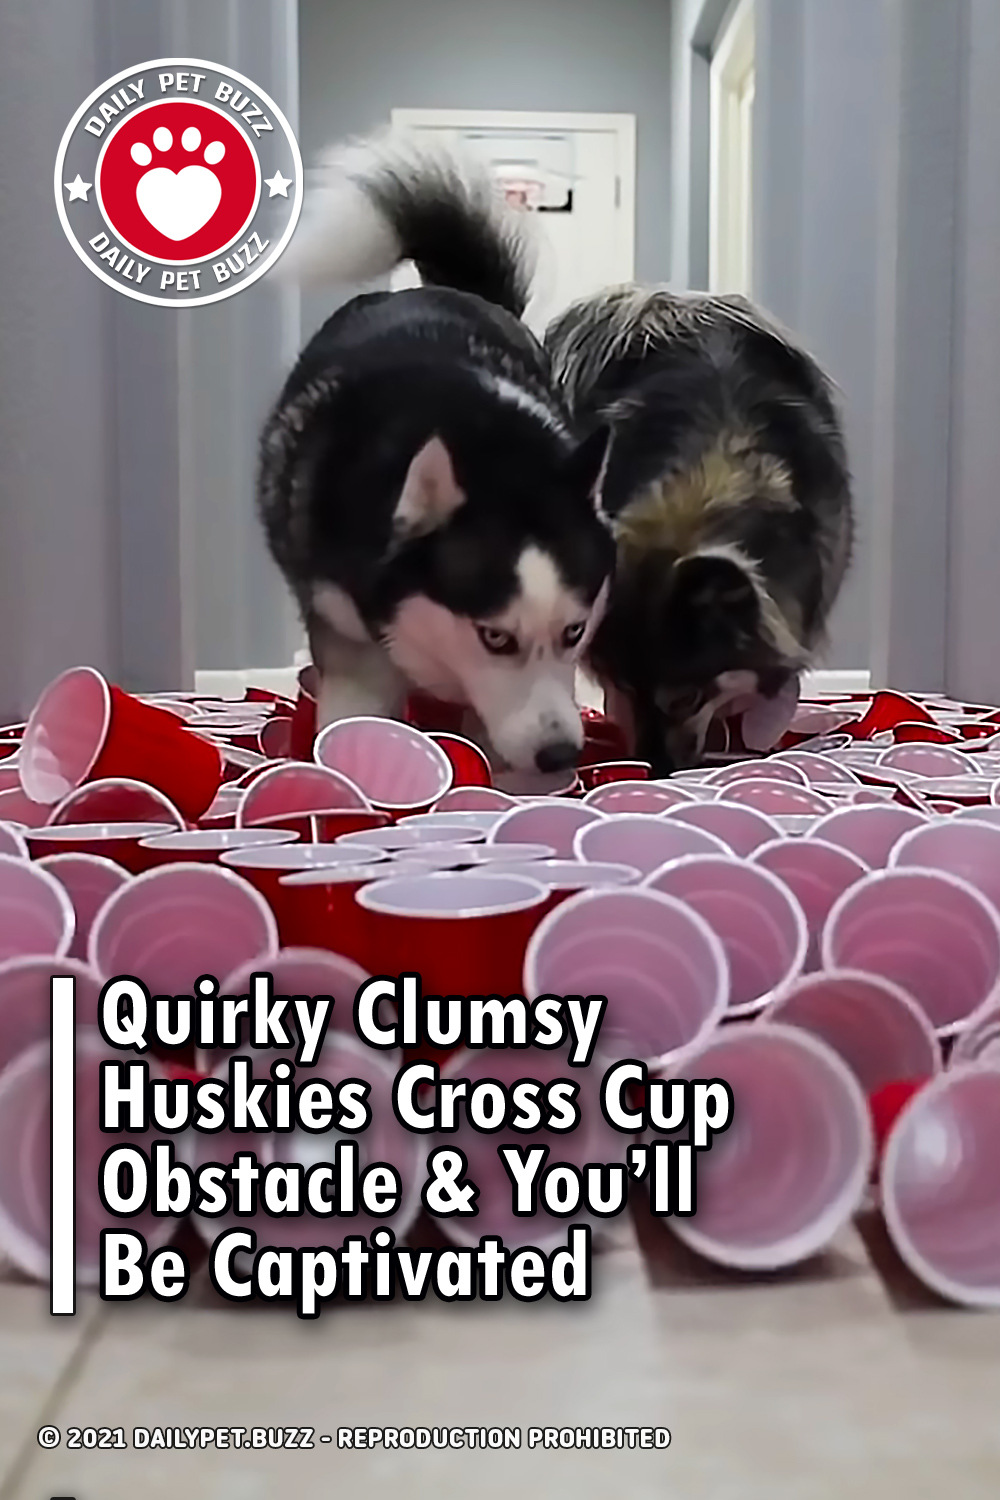 Quirky Clumsy Huskies Cross Cup Obstacle & You'll Be Captivated